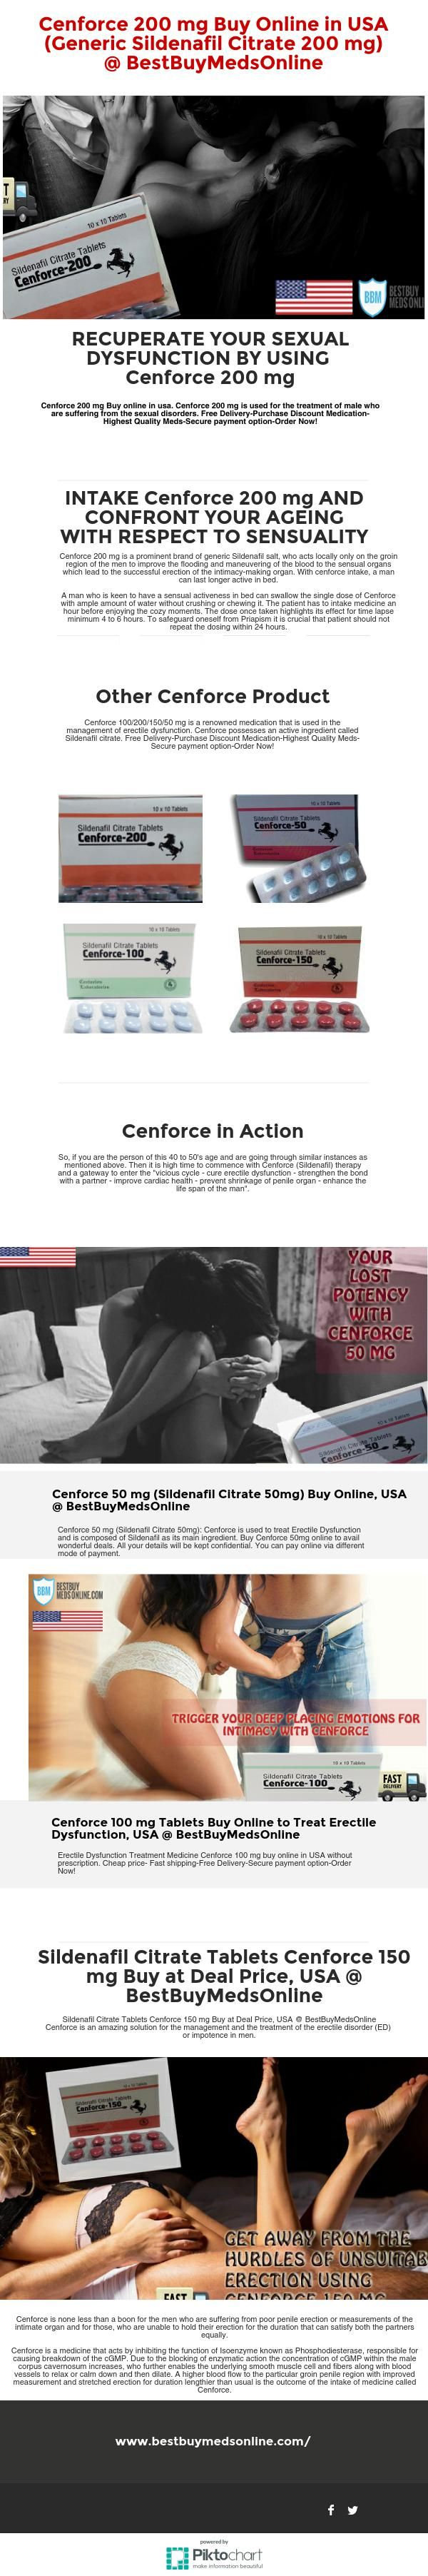 Buy Cenforce 200/100/150/50 mg online from our reliable store at admirable rates. Cenforce (Generic Sildenafil citrate) is an awesome USFDA approved the medication for the treatment of erectile brokenness. Free Delivery, Purchase Discount Medication! Highest Quality Meds. Secure payment option. Order Now!